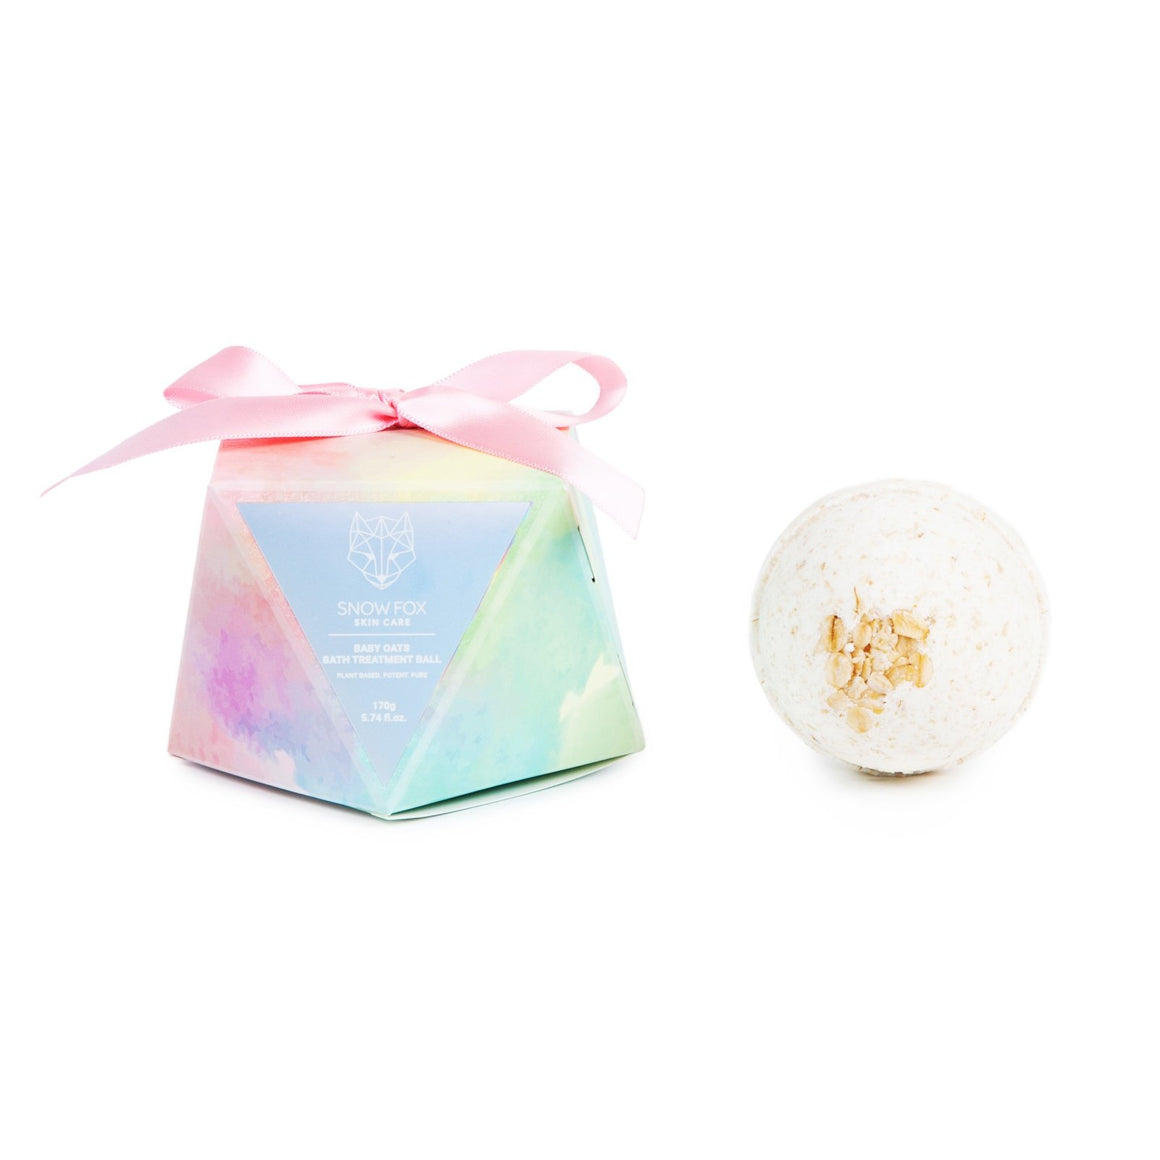 Snow Fox Skincare Baby Oats Bath Treatment Ball